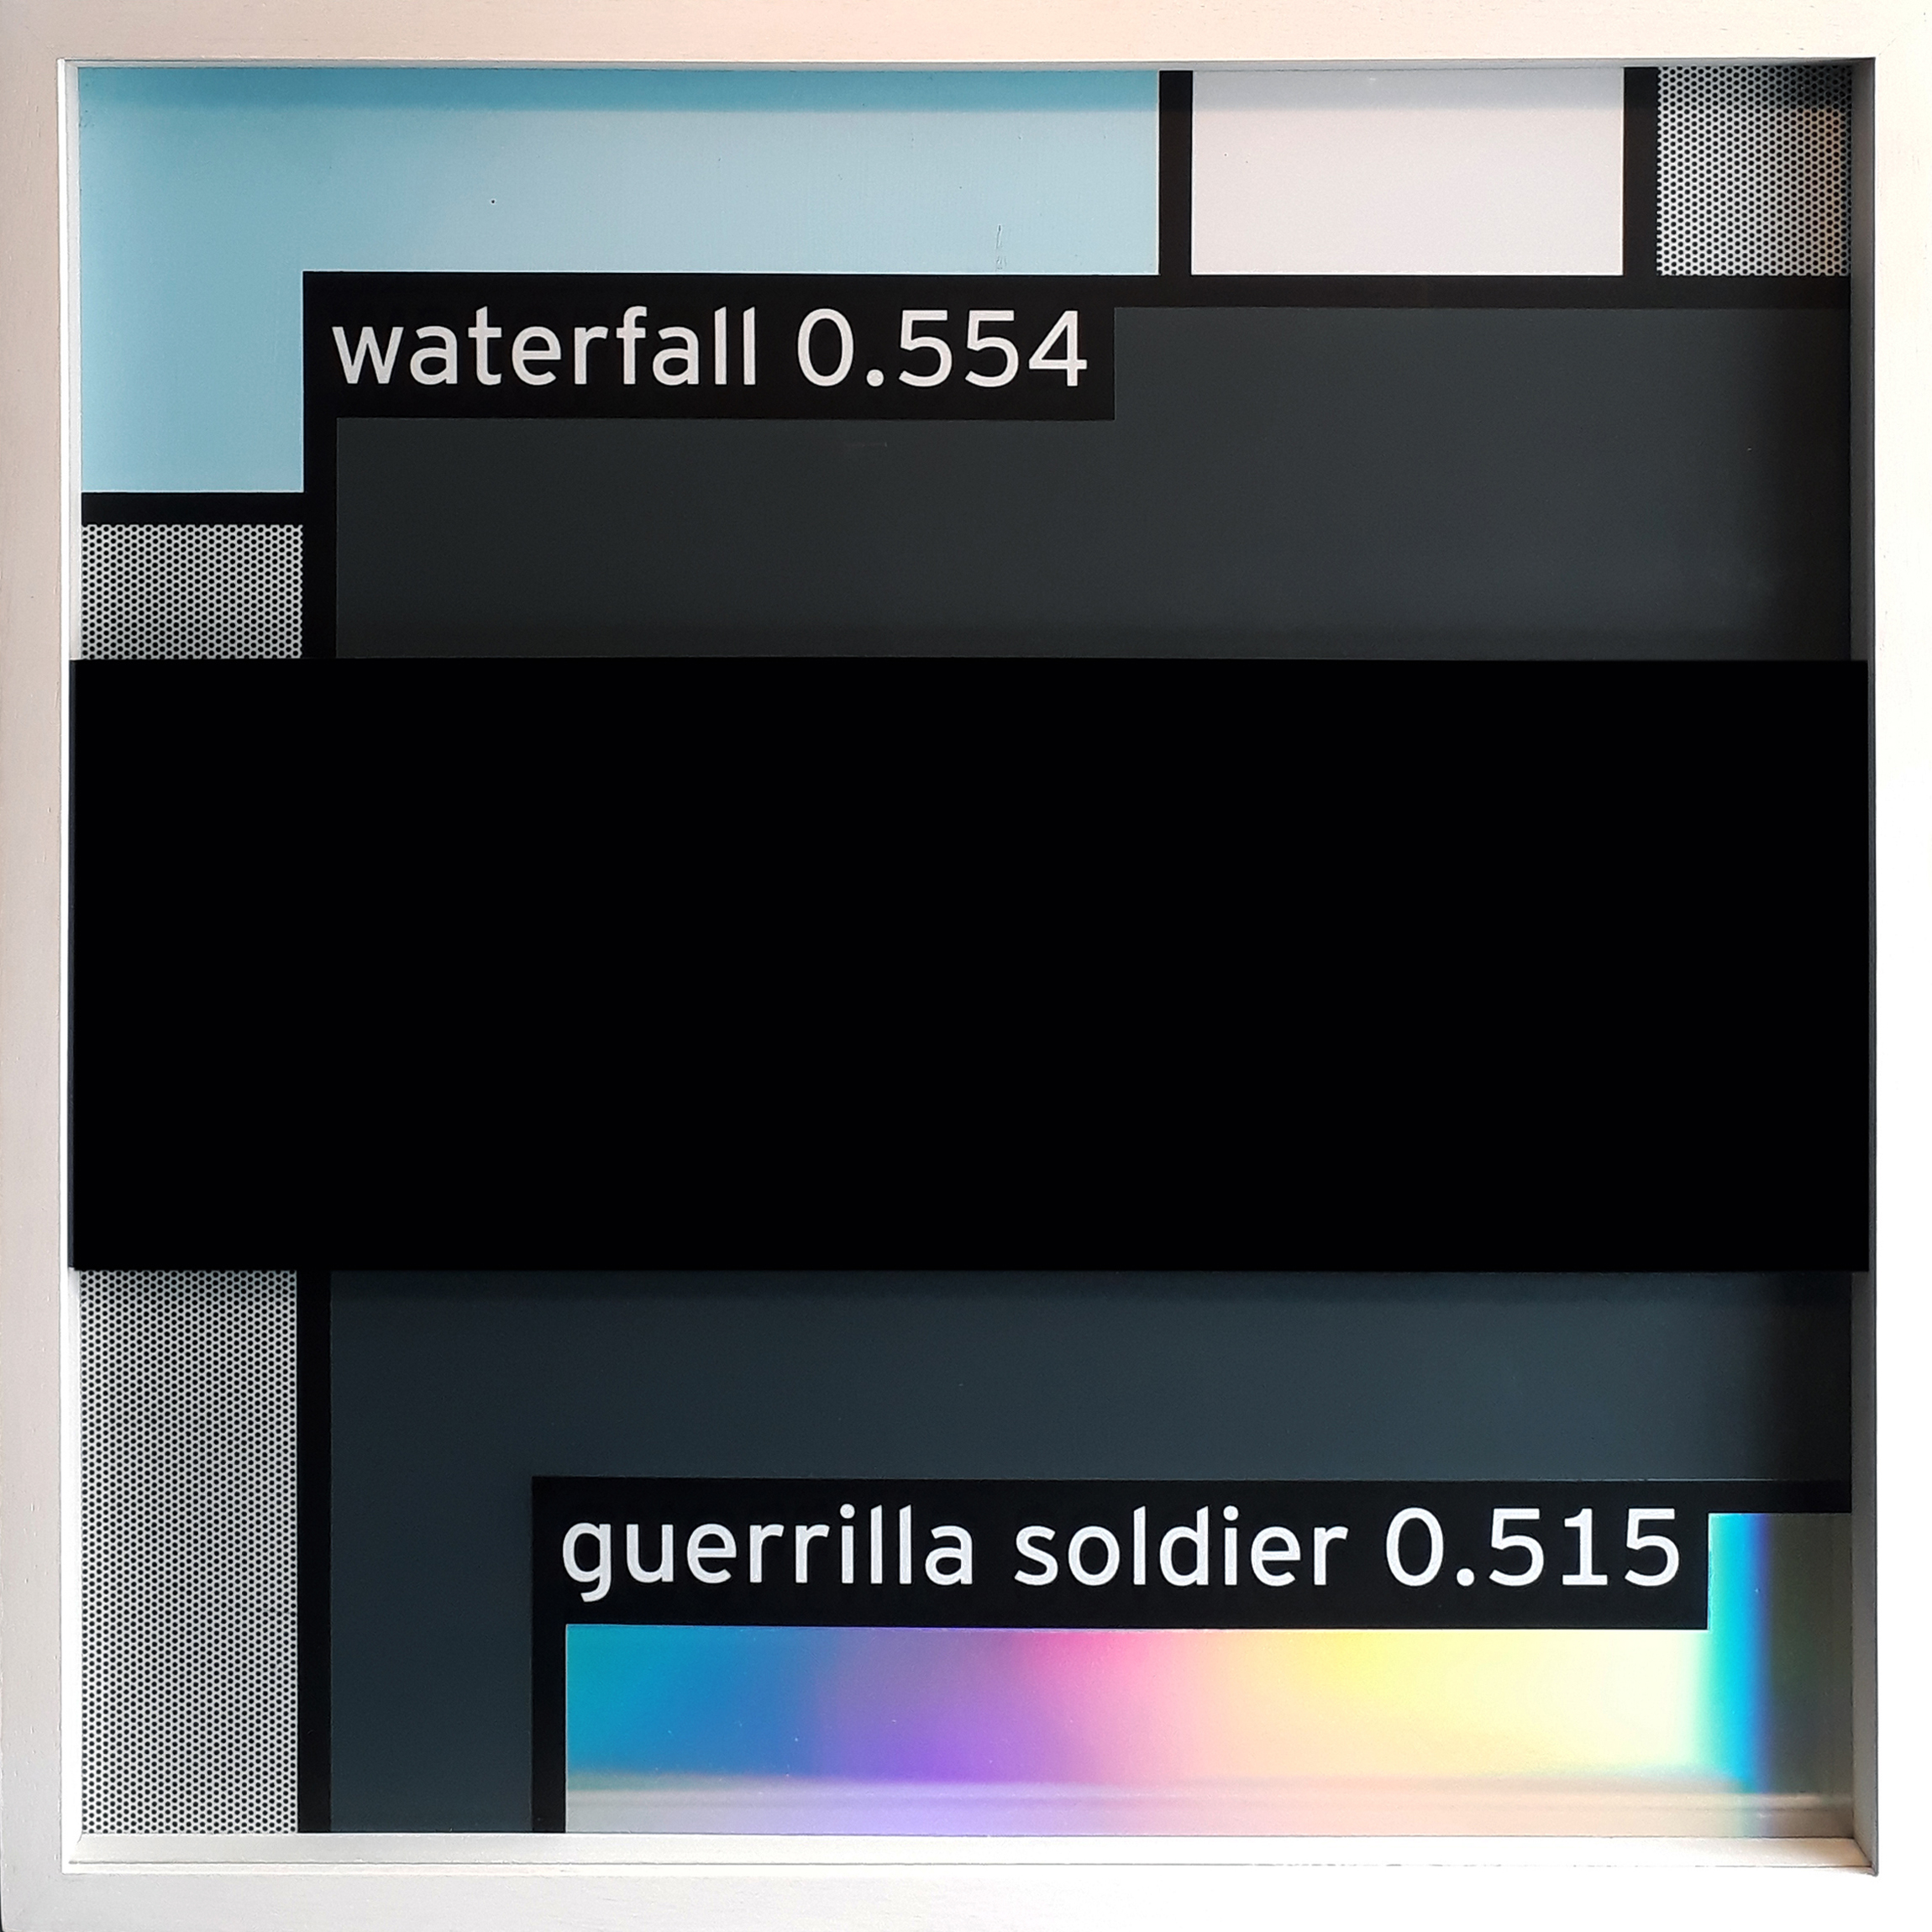 GUERRILLA SOLDIER 0.515